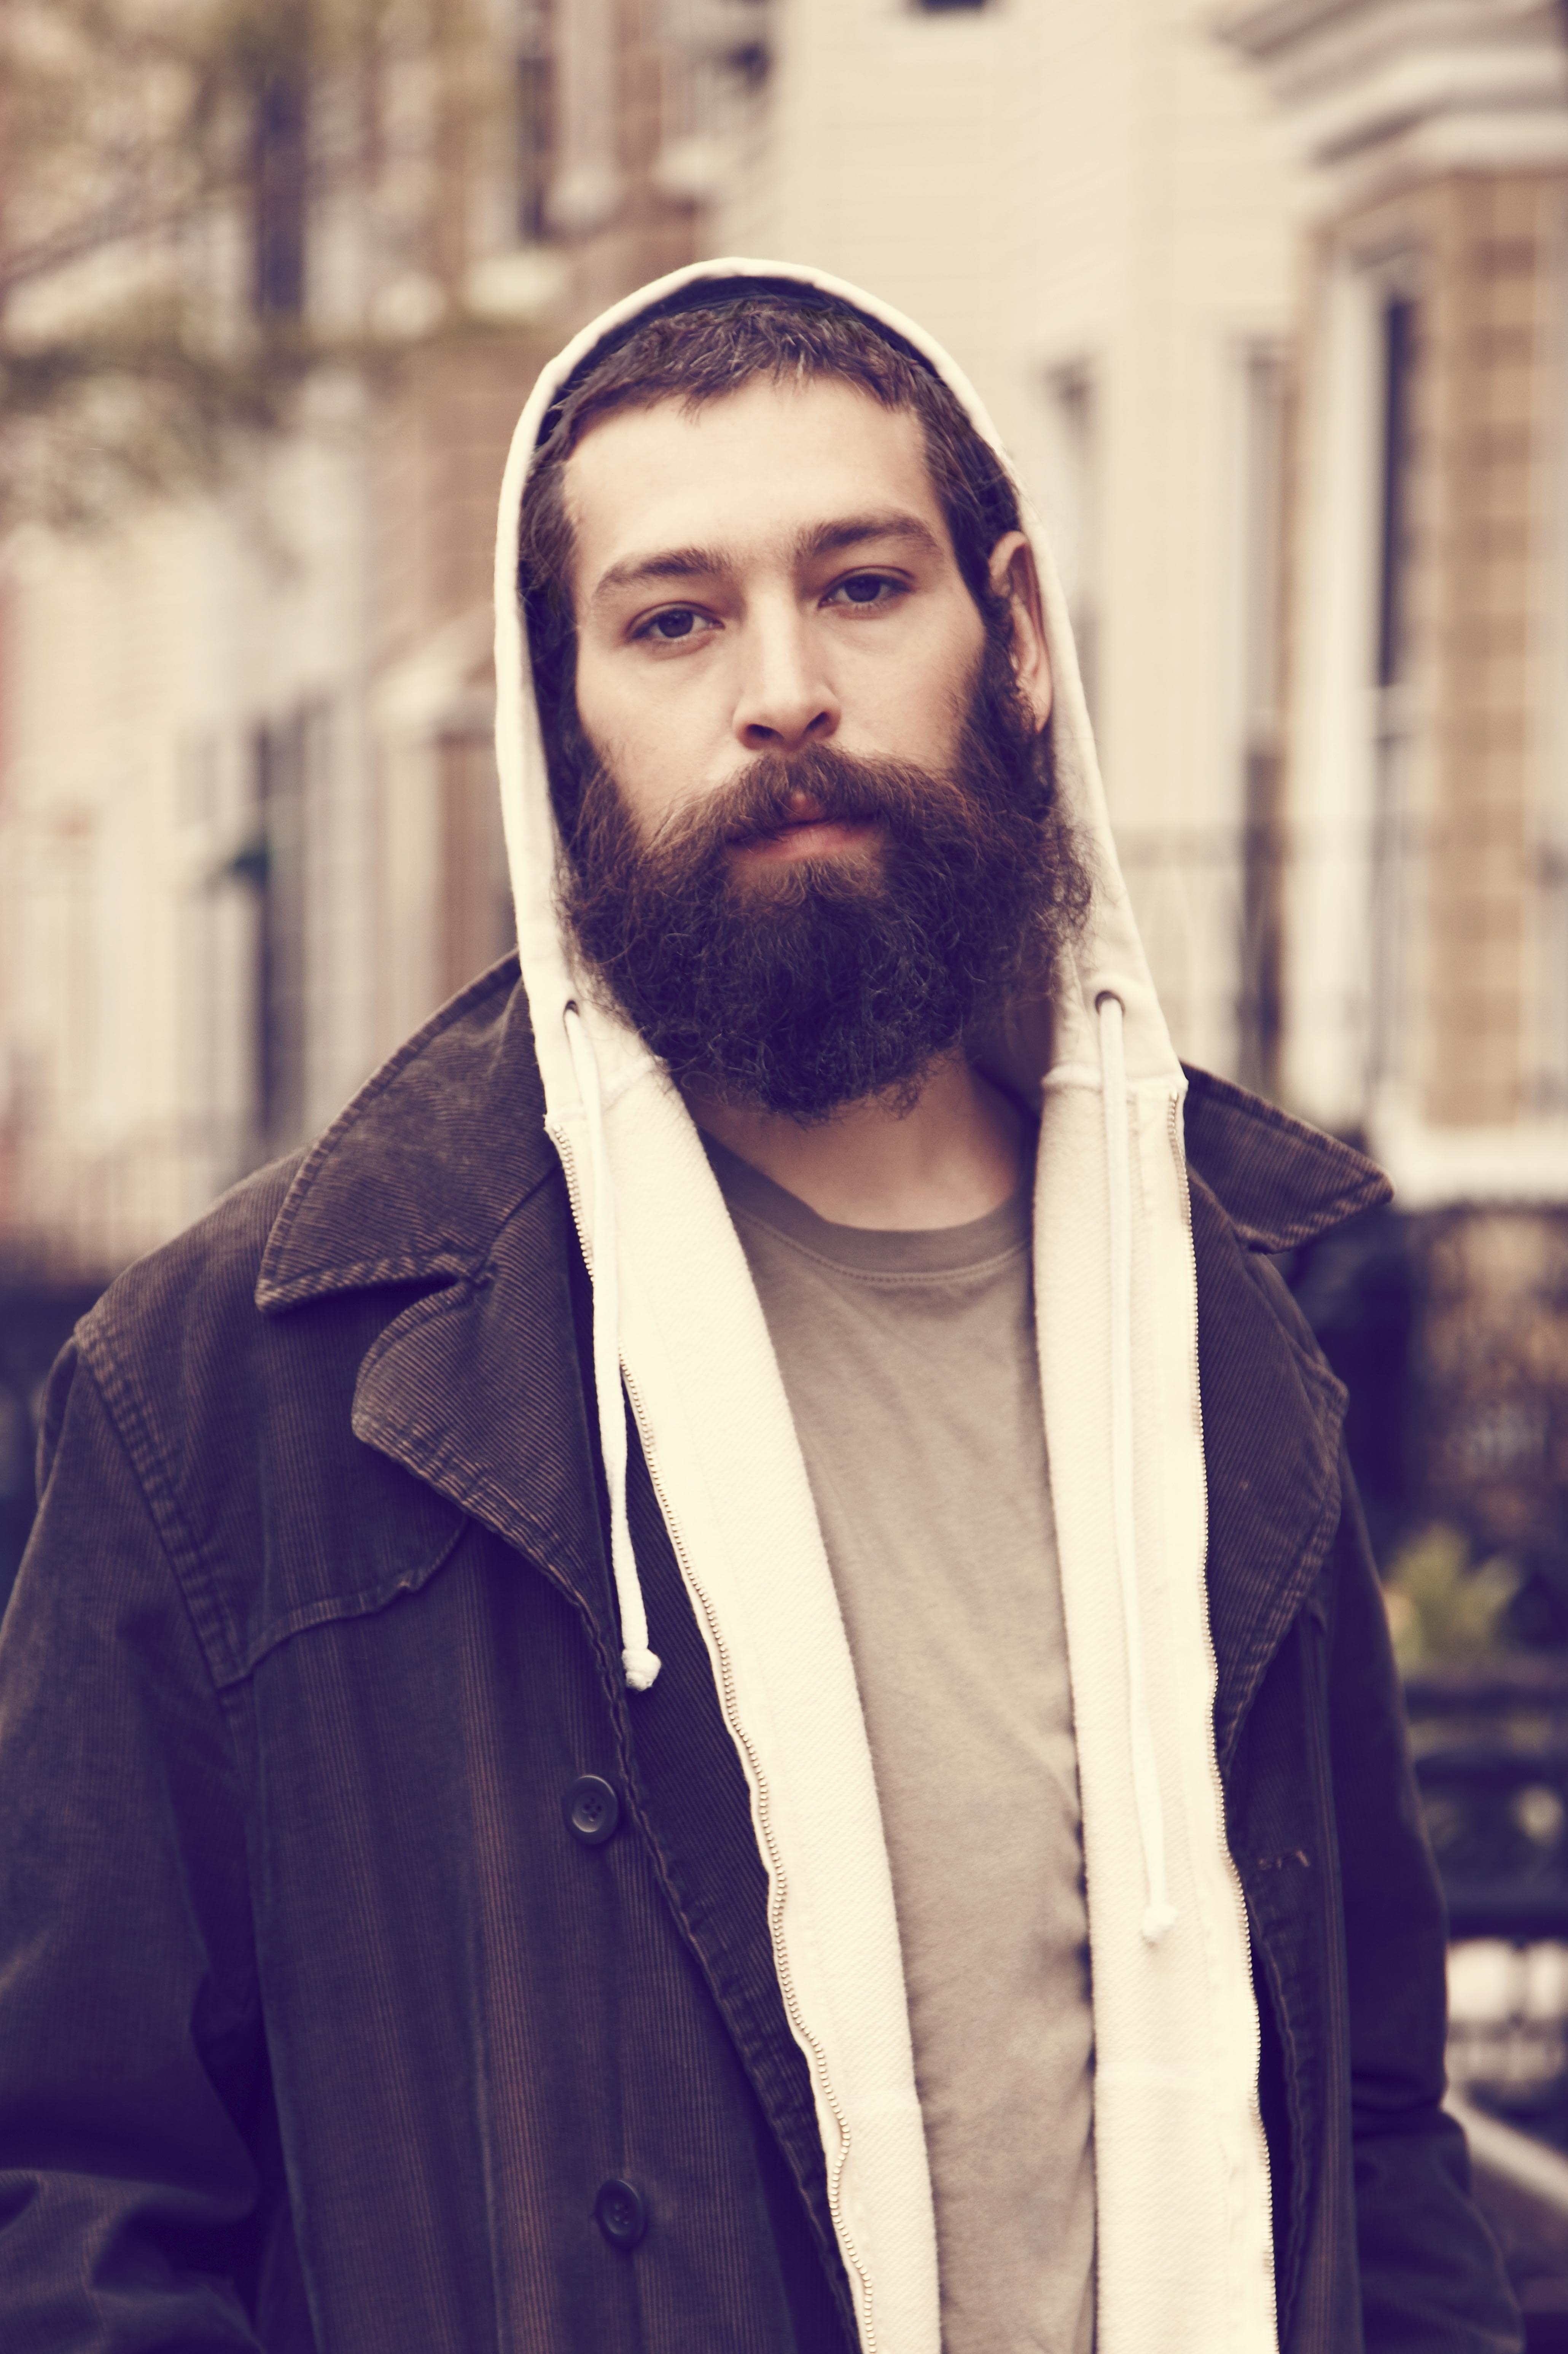 The 38-year old son of father (?) and mother(?), 178 cm tall Matisyahu in 2017 photo